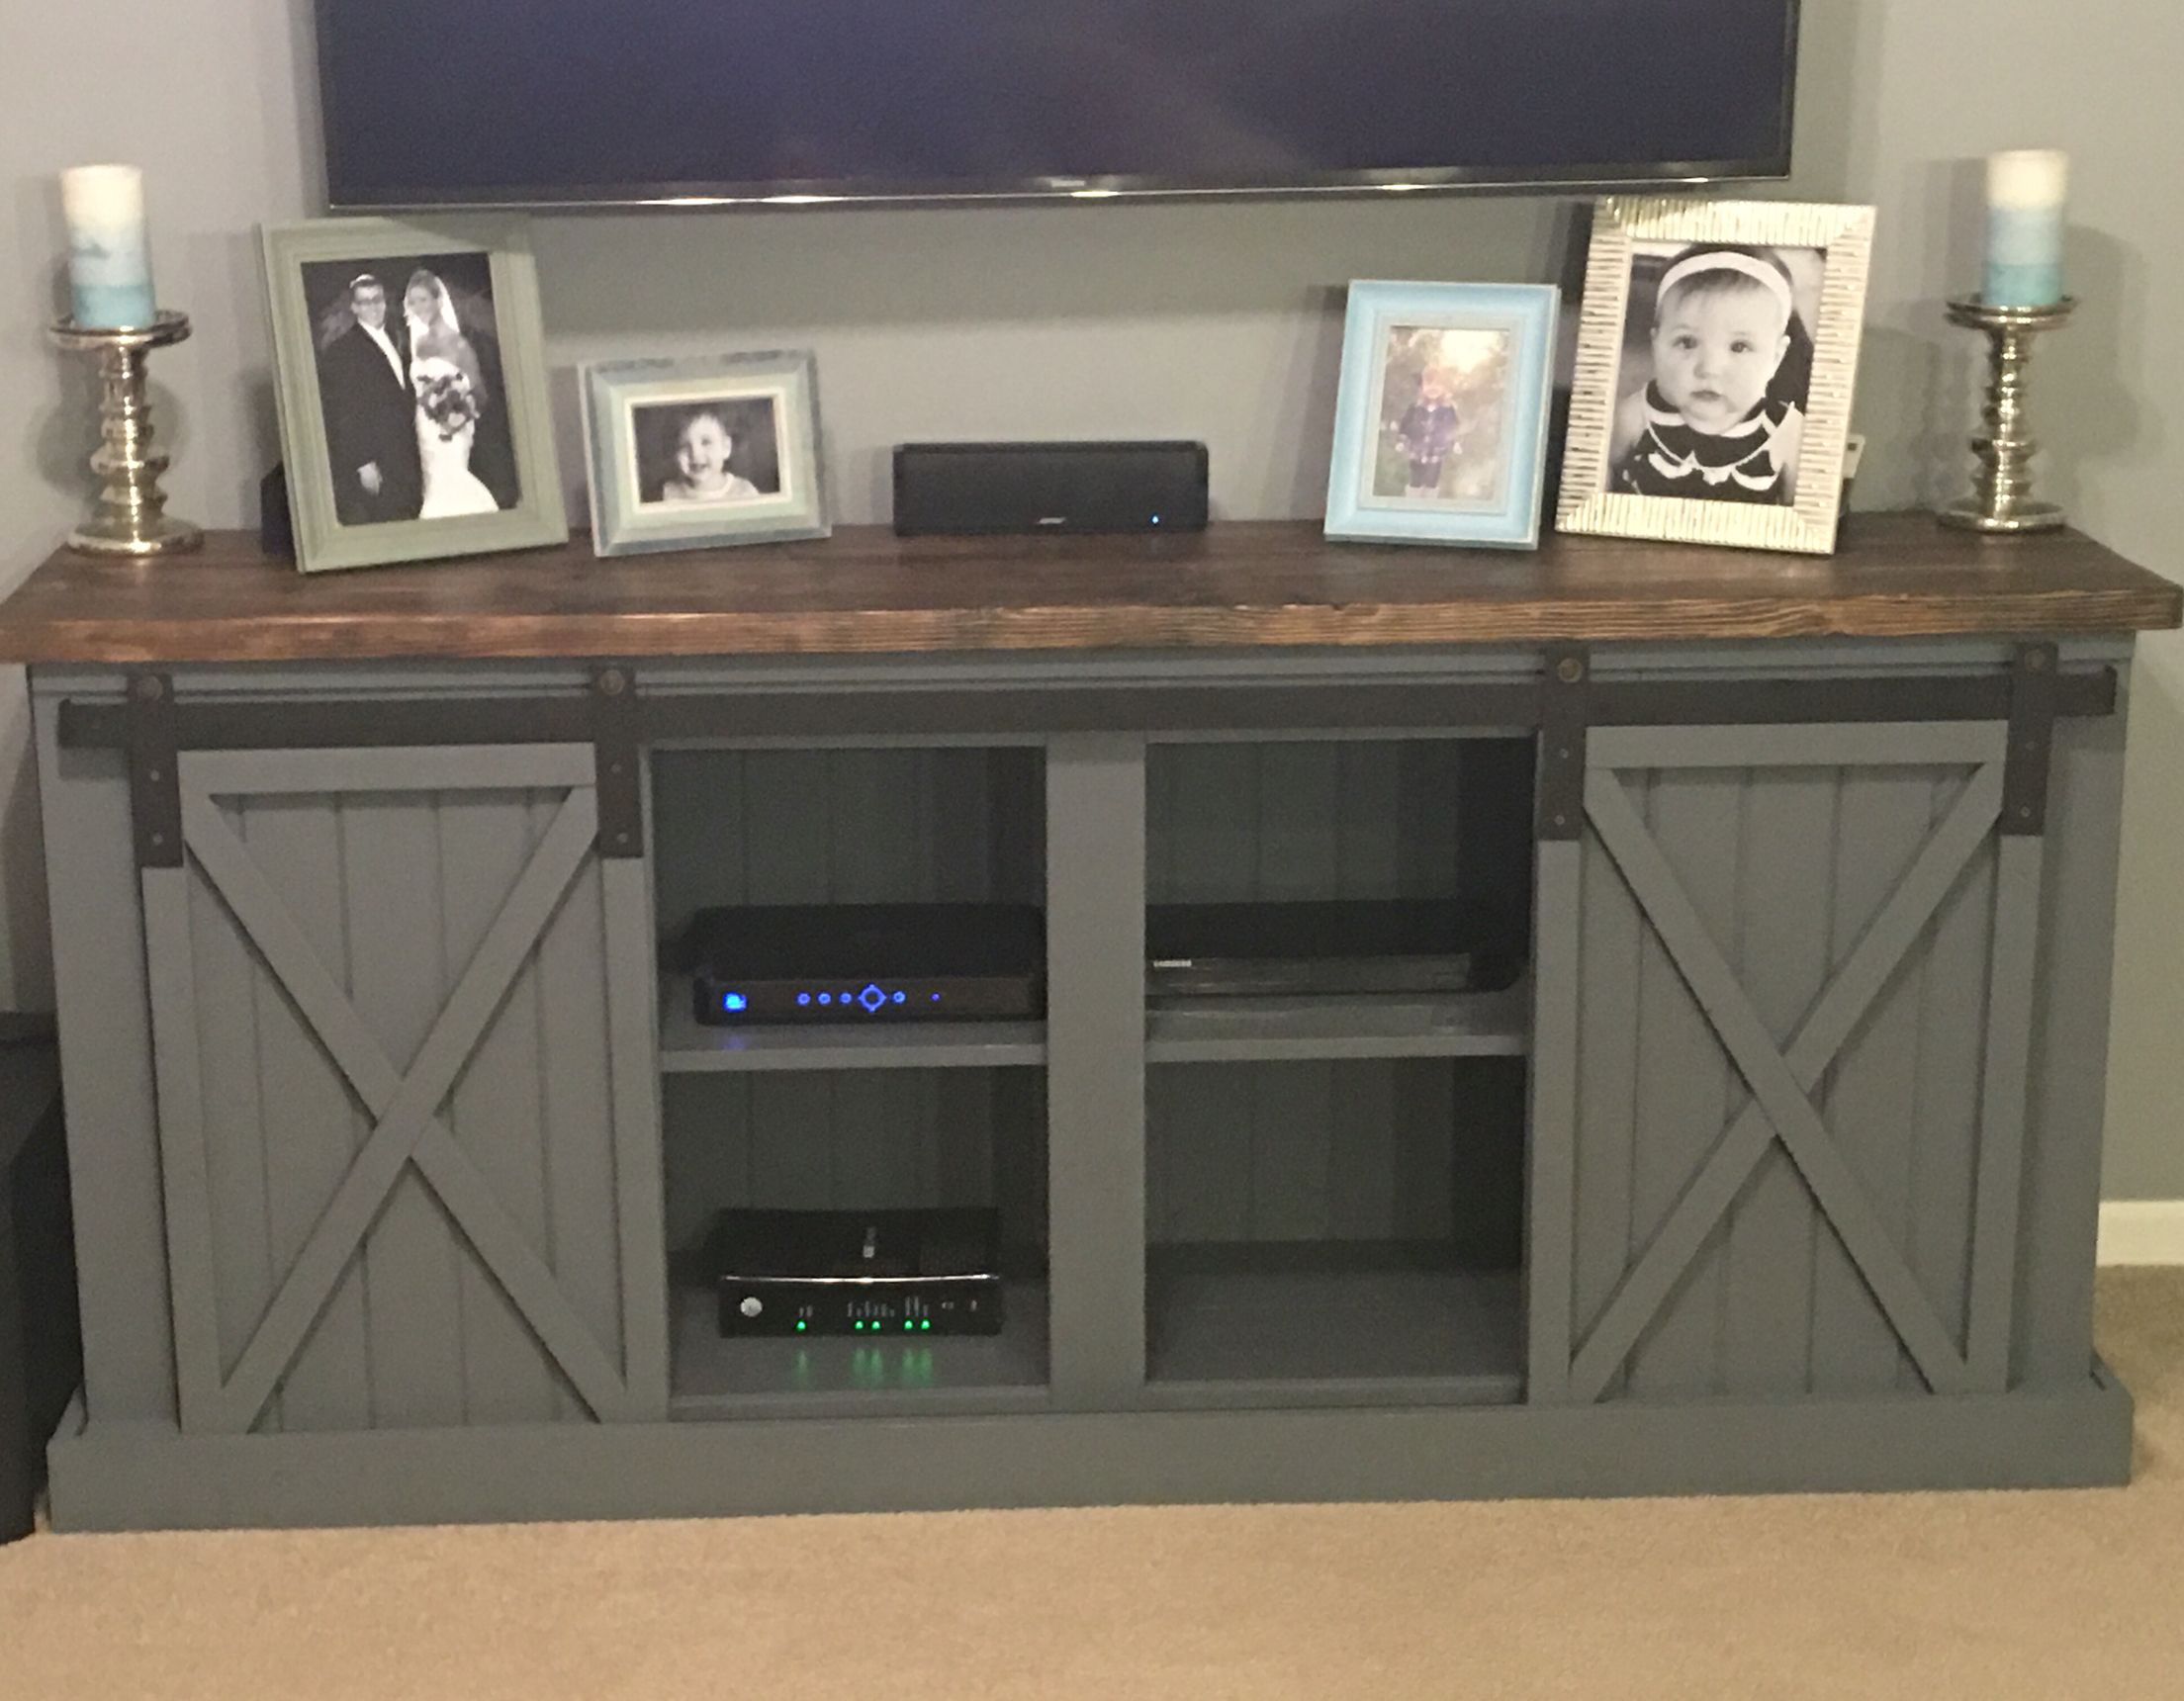 17 diy entertainment center ideas and designs for your new home house home pinterest Design plans for entertainment center